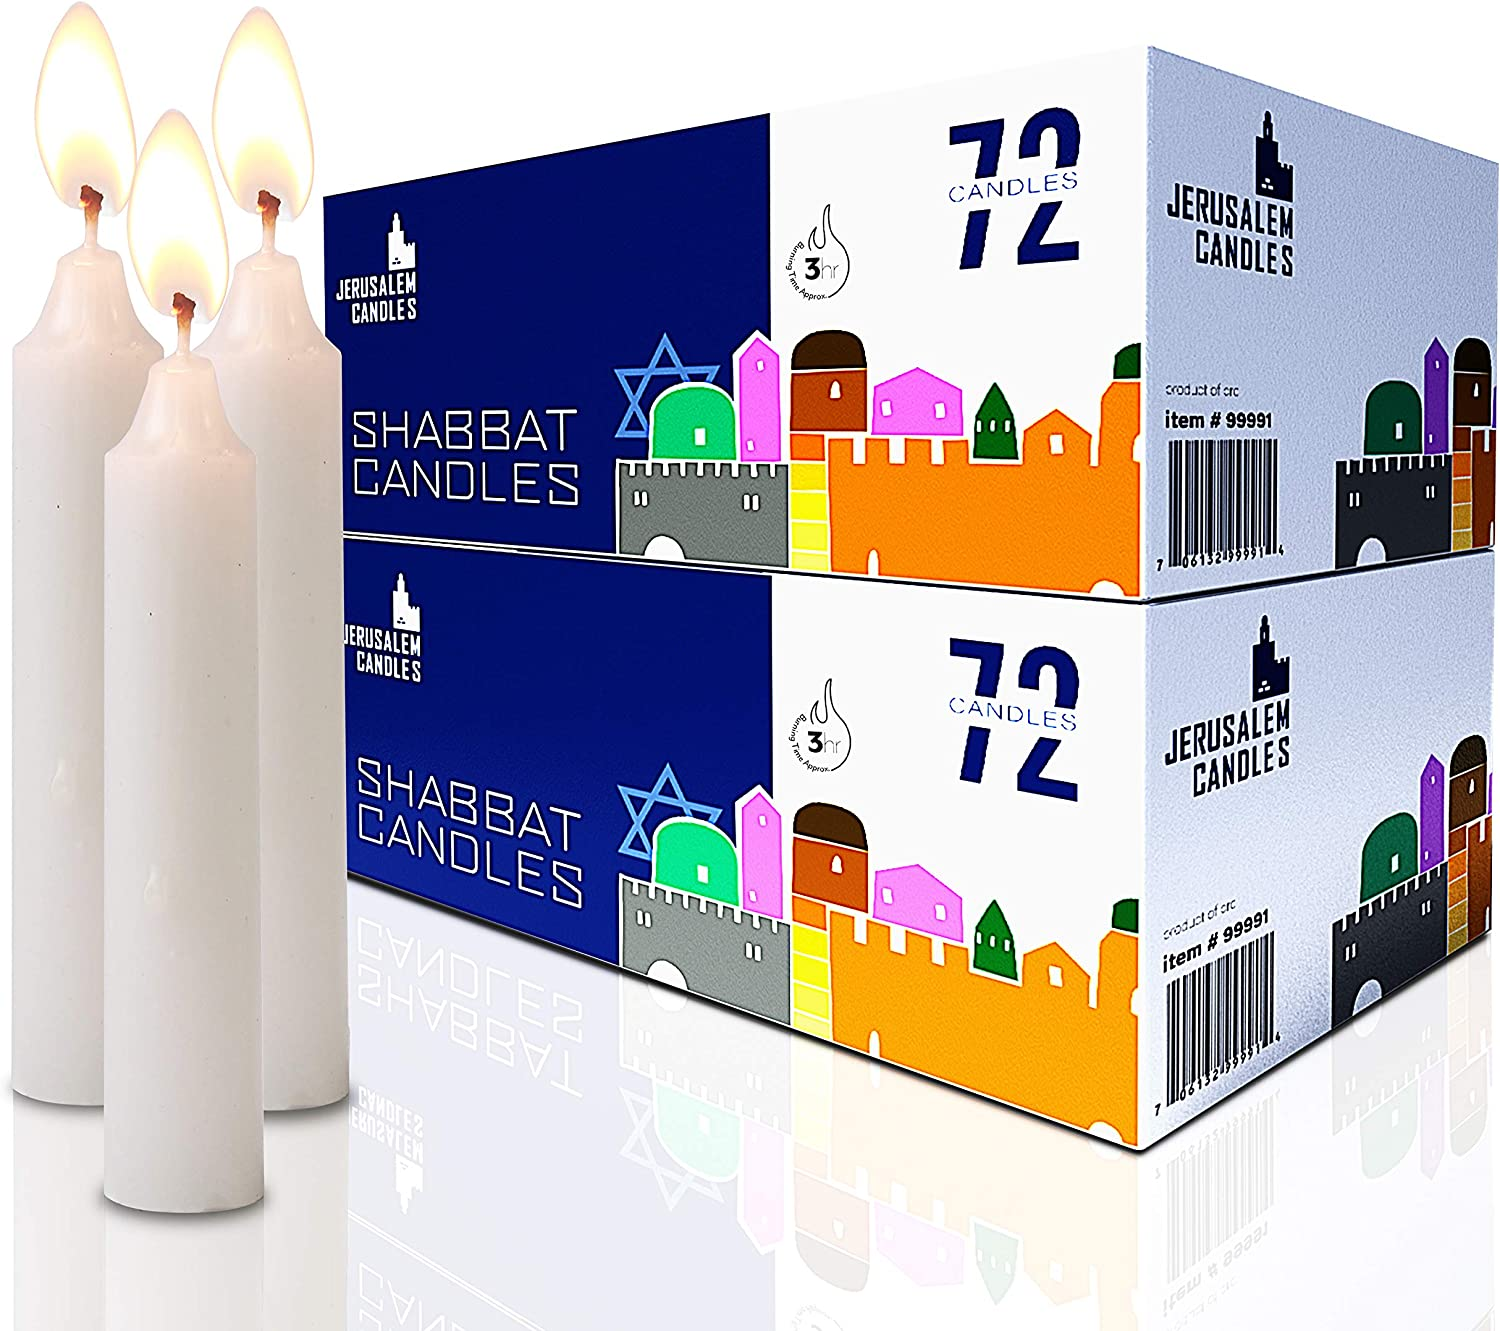 Traditional Shabbos Candles Shabbat Candles 2-Pack x 72 Candles, 144 Candles 3 Hour